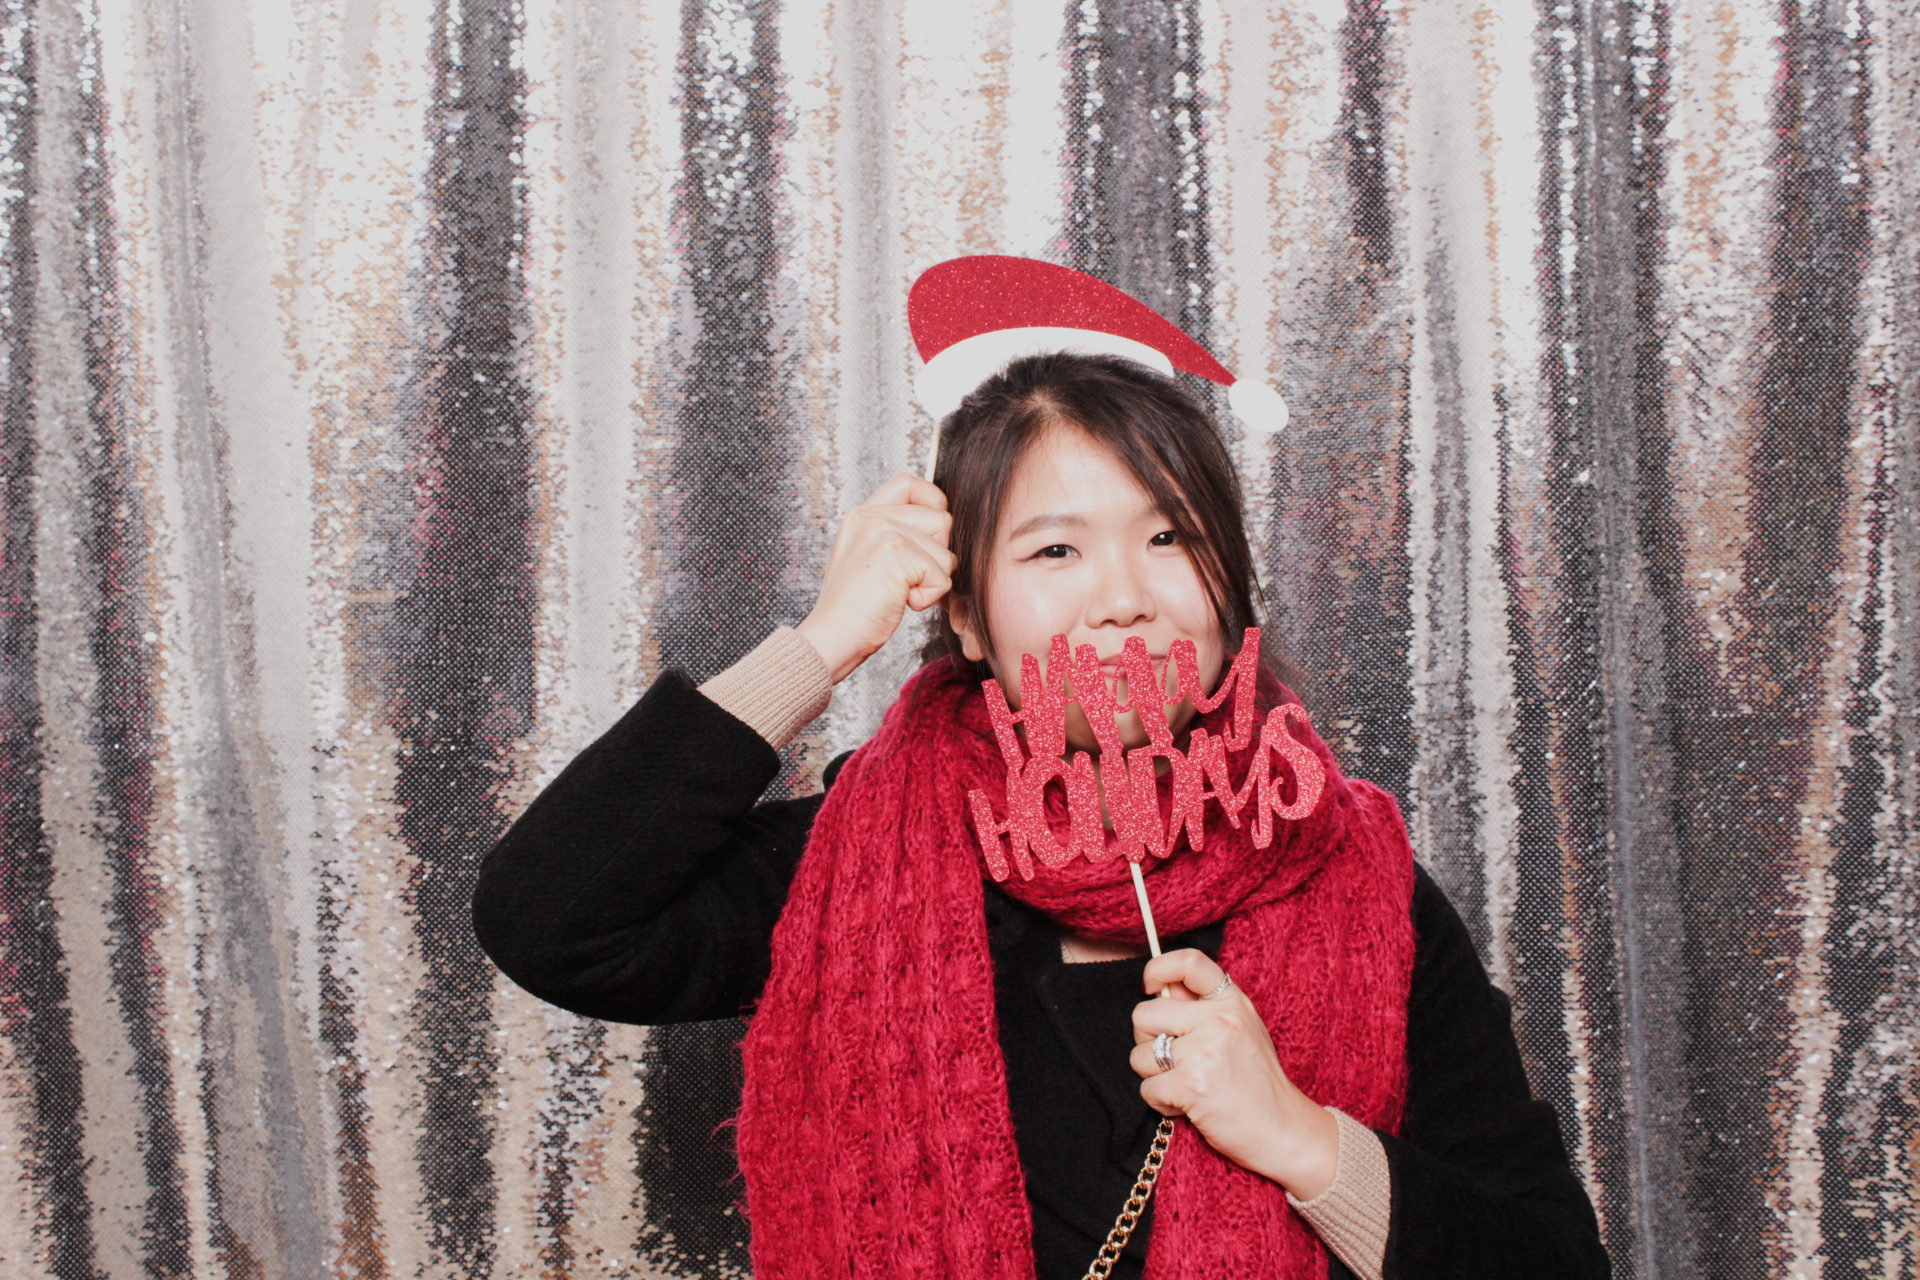 photo booth rental richmond virginia